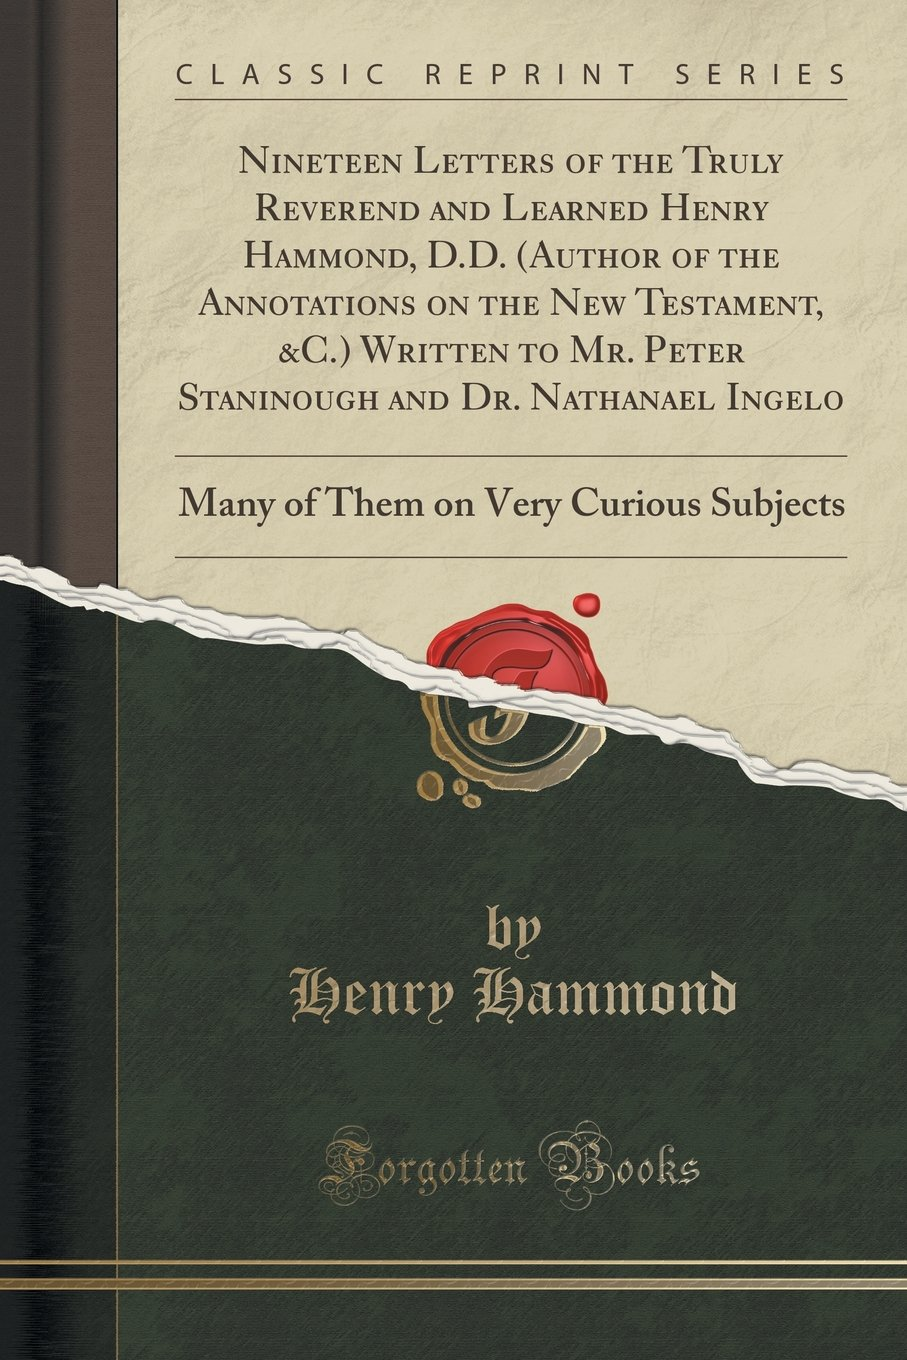 Nineteen Letters of the Truly Reverend and Learned Henry Hammond, D.D. (Author of the Annotations on the New Testament, &C.) Written to Mr. Peter ... on Very Curious Subjects (Classic Reprint) PDF